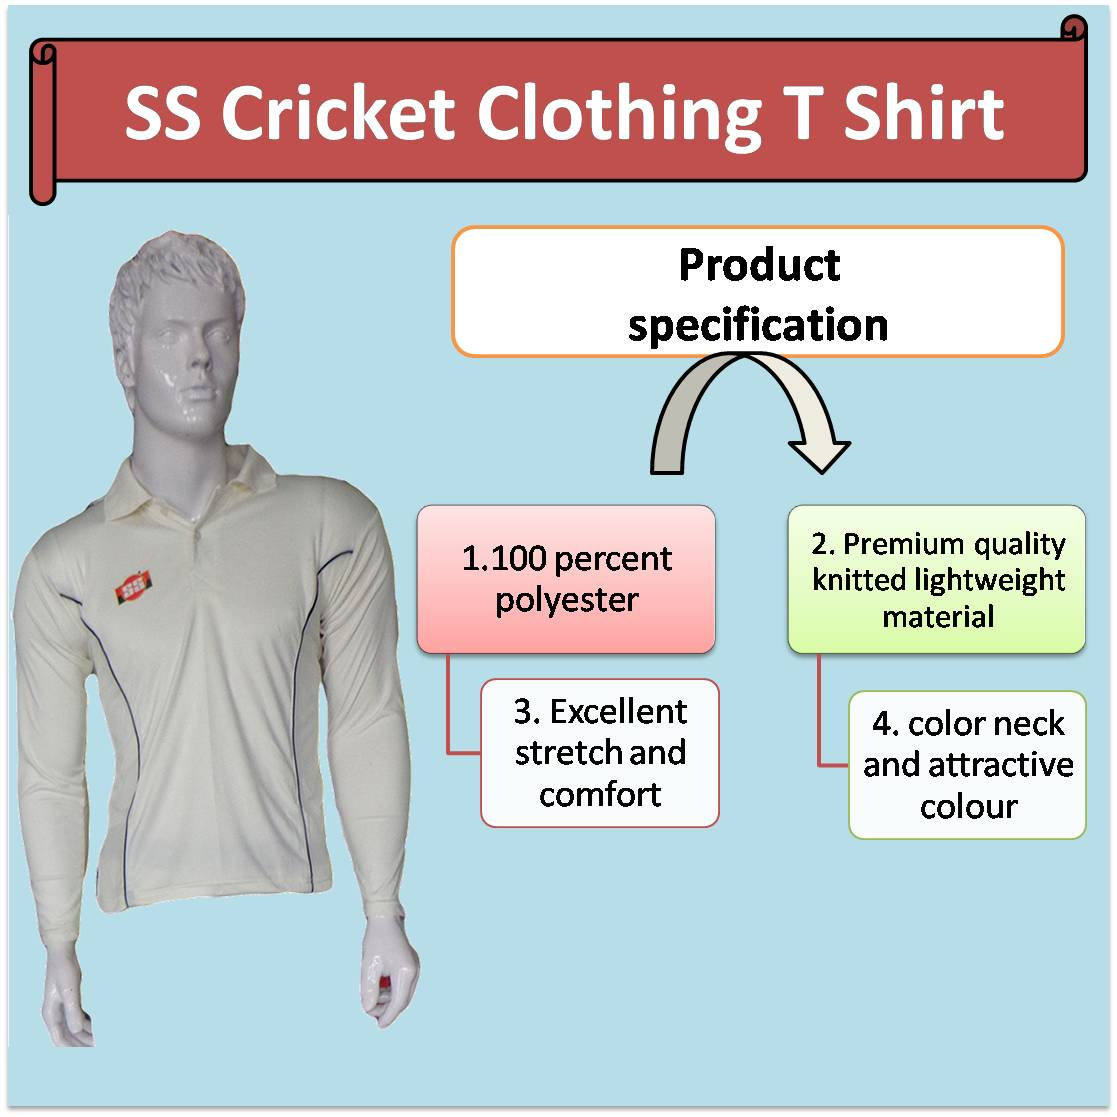 SS Cricket Clothing T Shirt